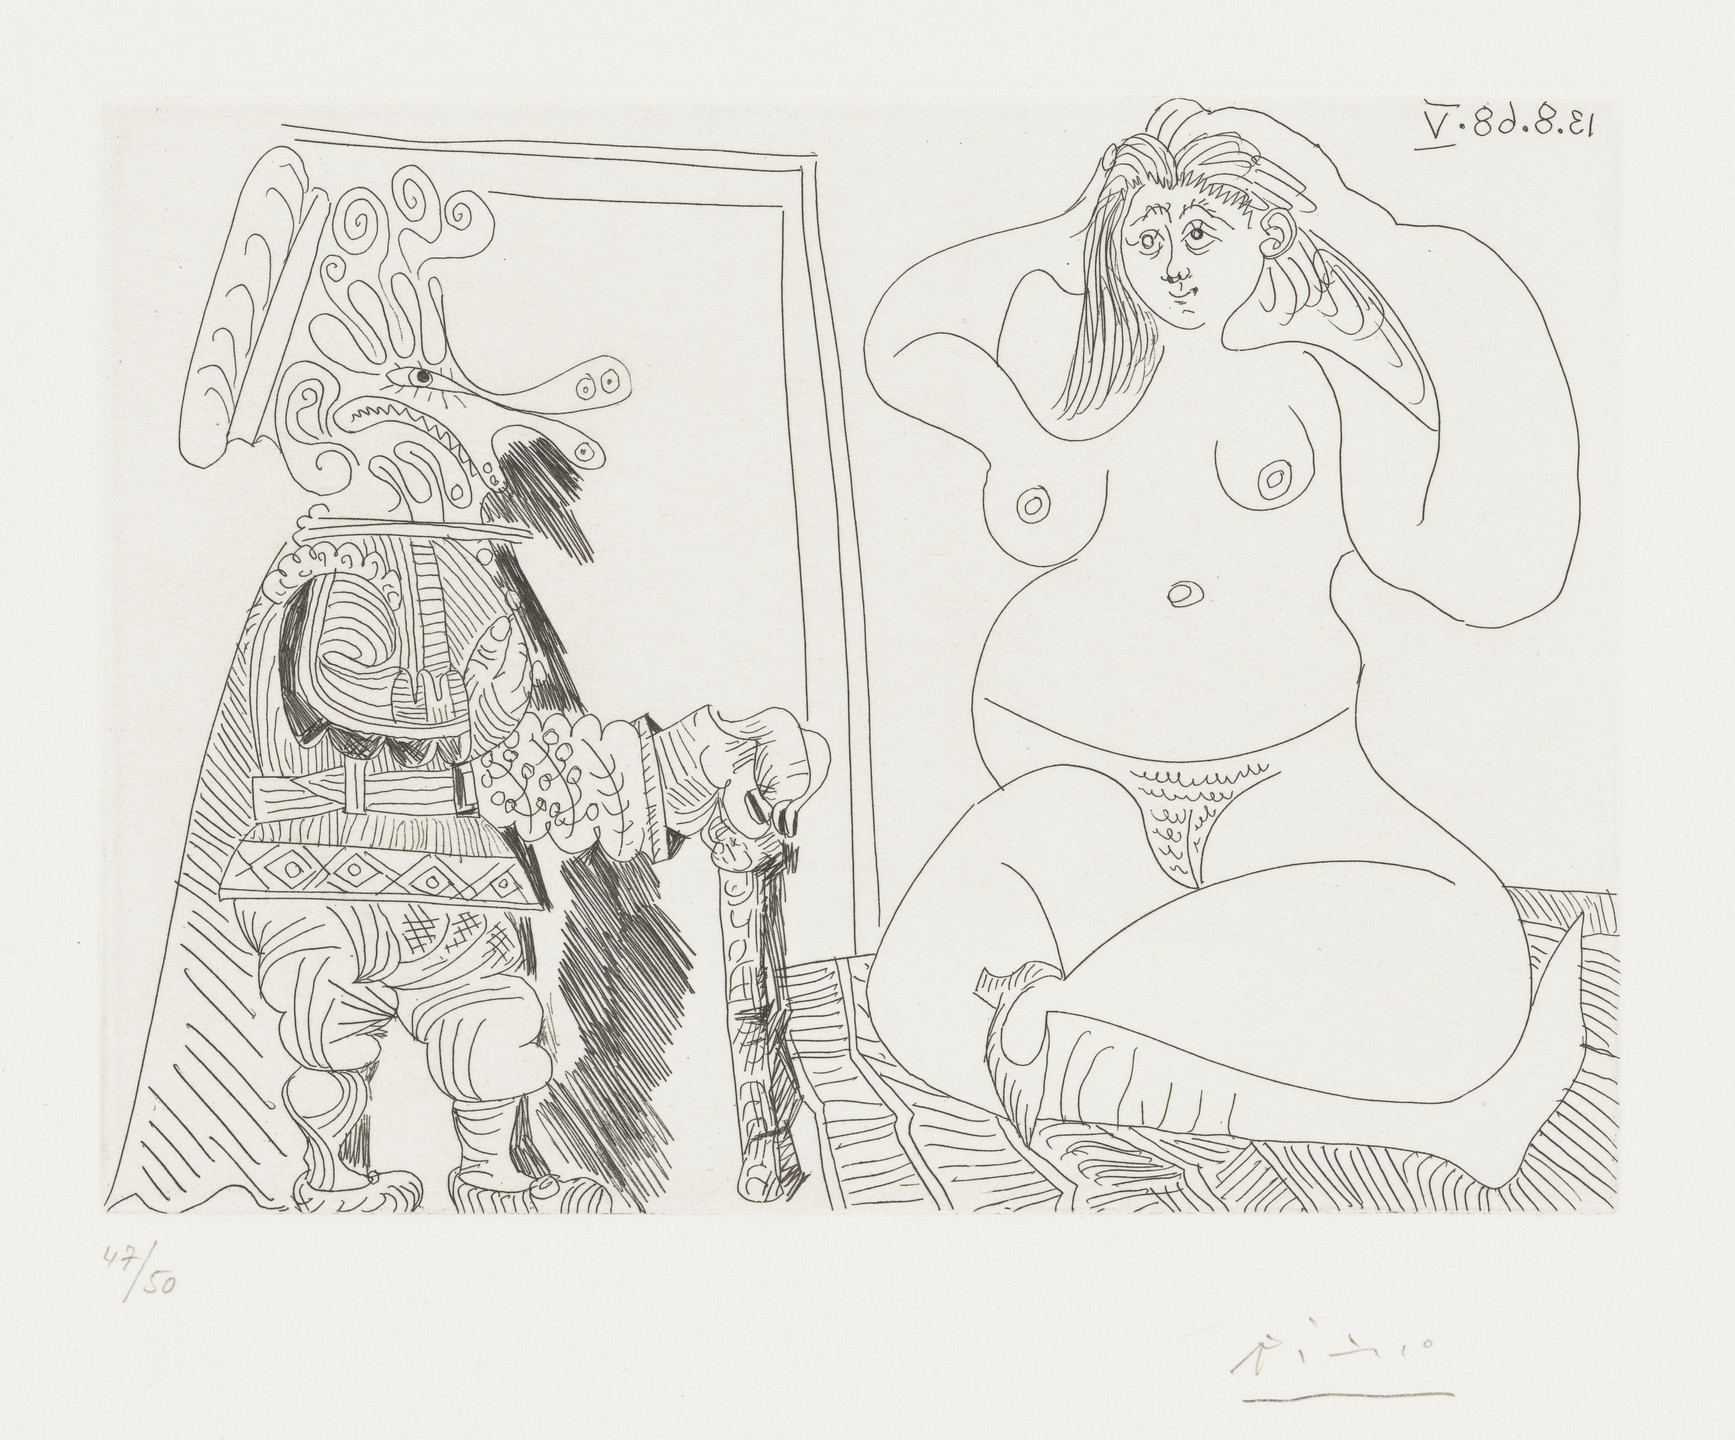 Pablo Picasso. No. 276 from Suite 347. 1968